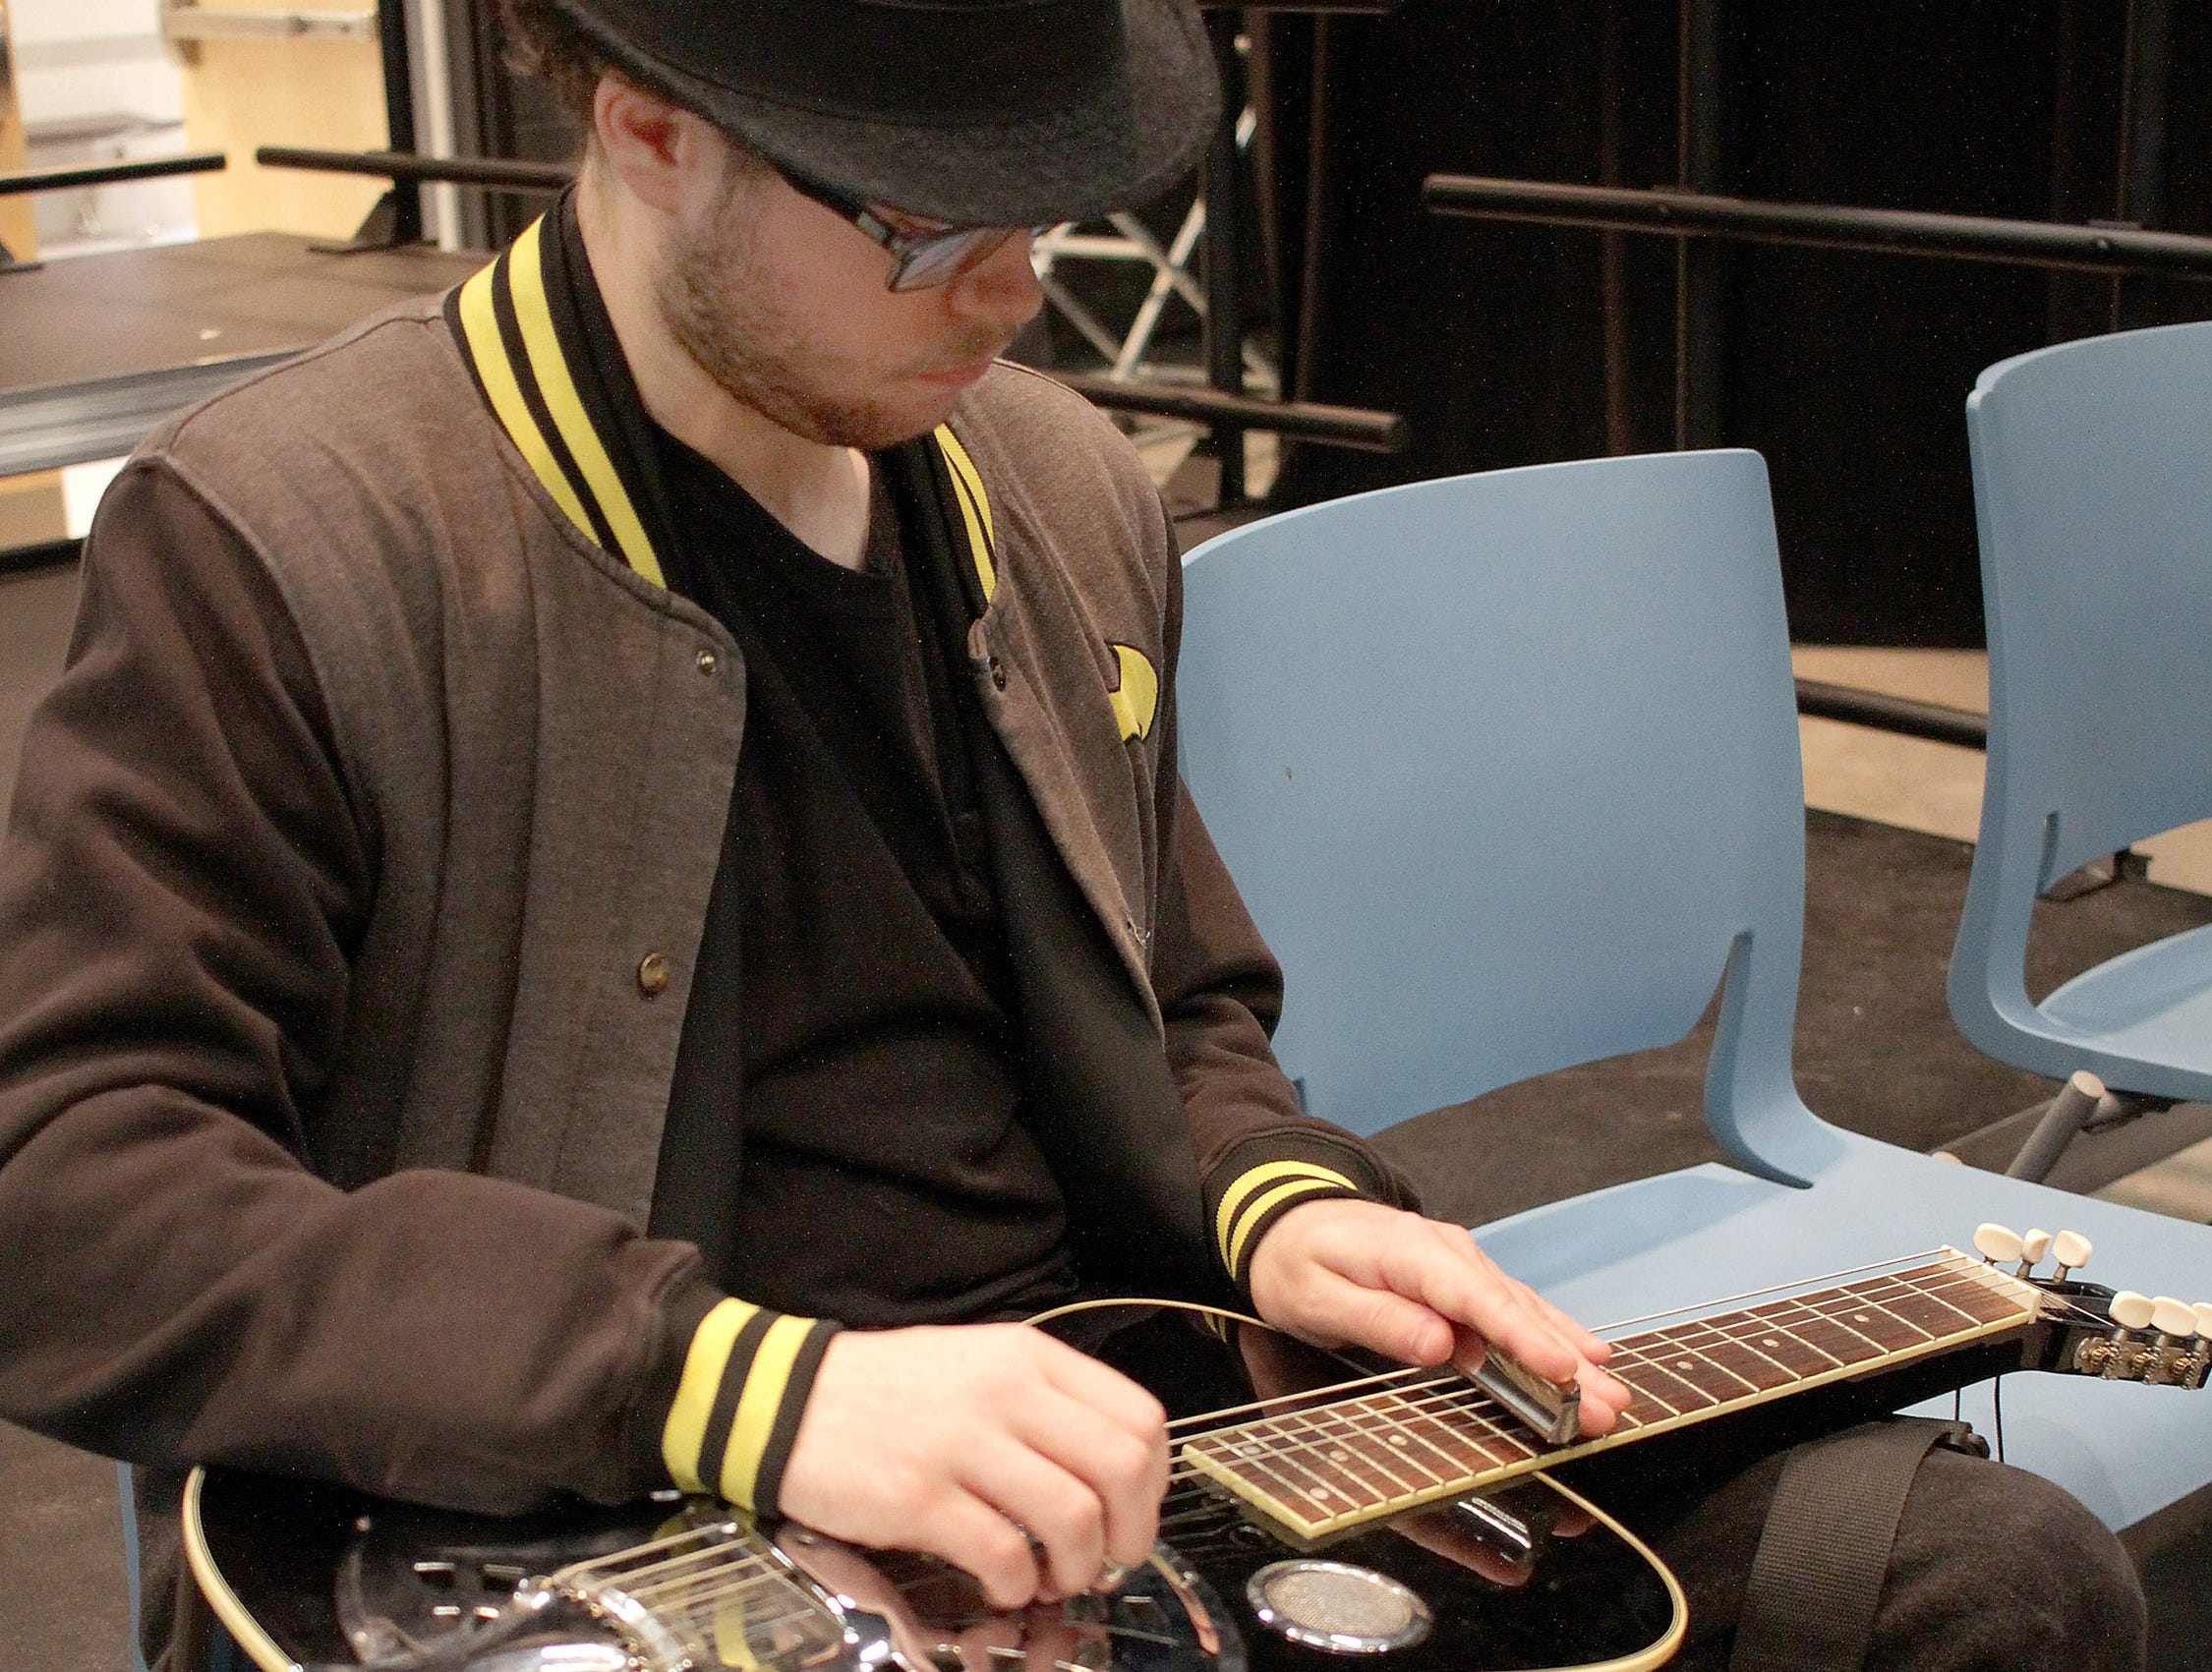 Tristan Graves plays his dobro guitar at High School Music Day at Volunteer State Community College on Saturday, February 23, 2019.